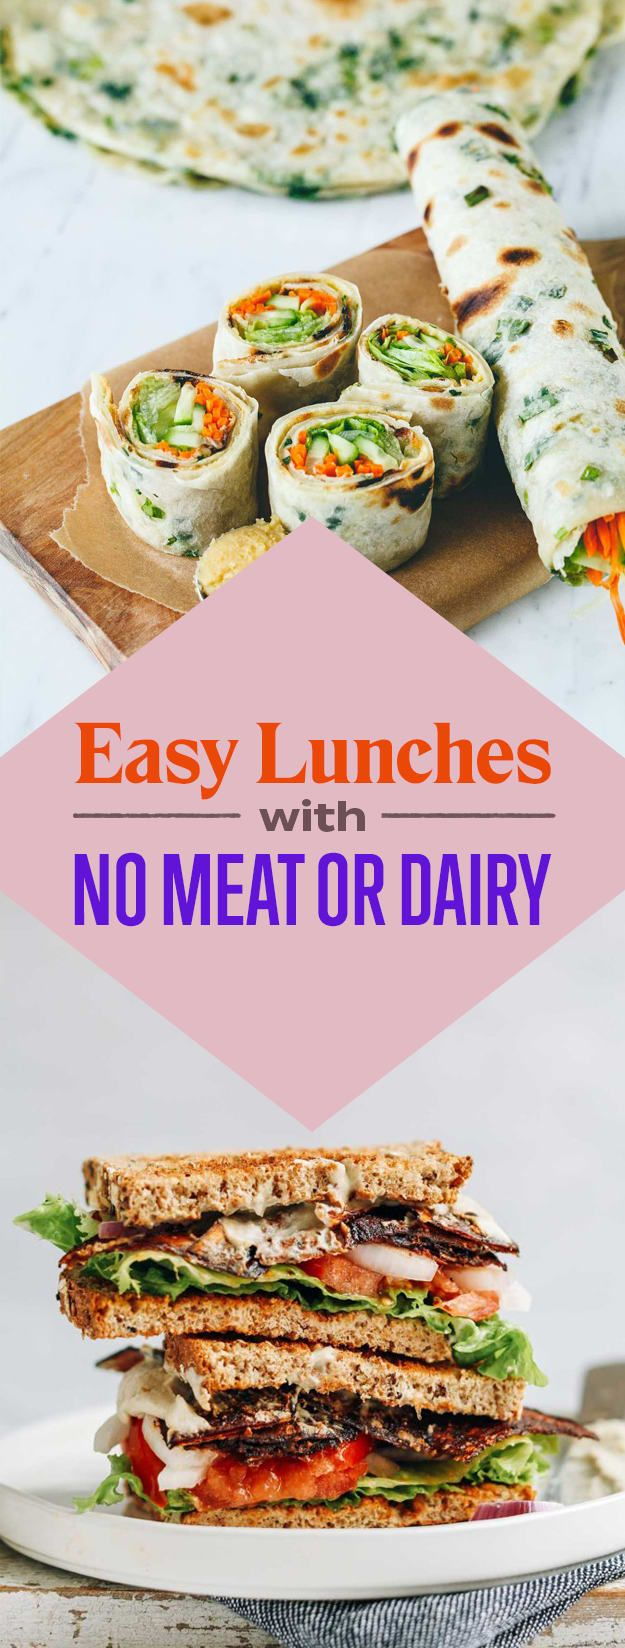 19 Easy Lunches With No Meat Or Dairy